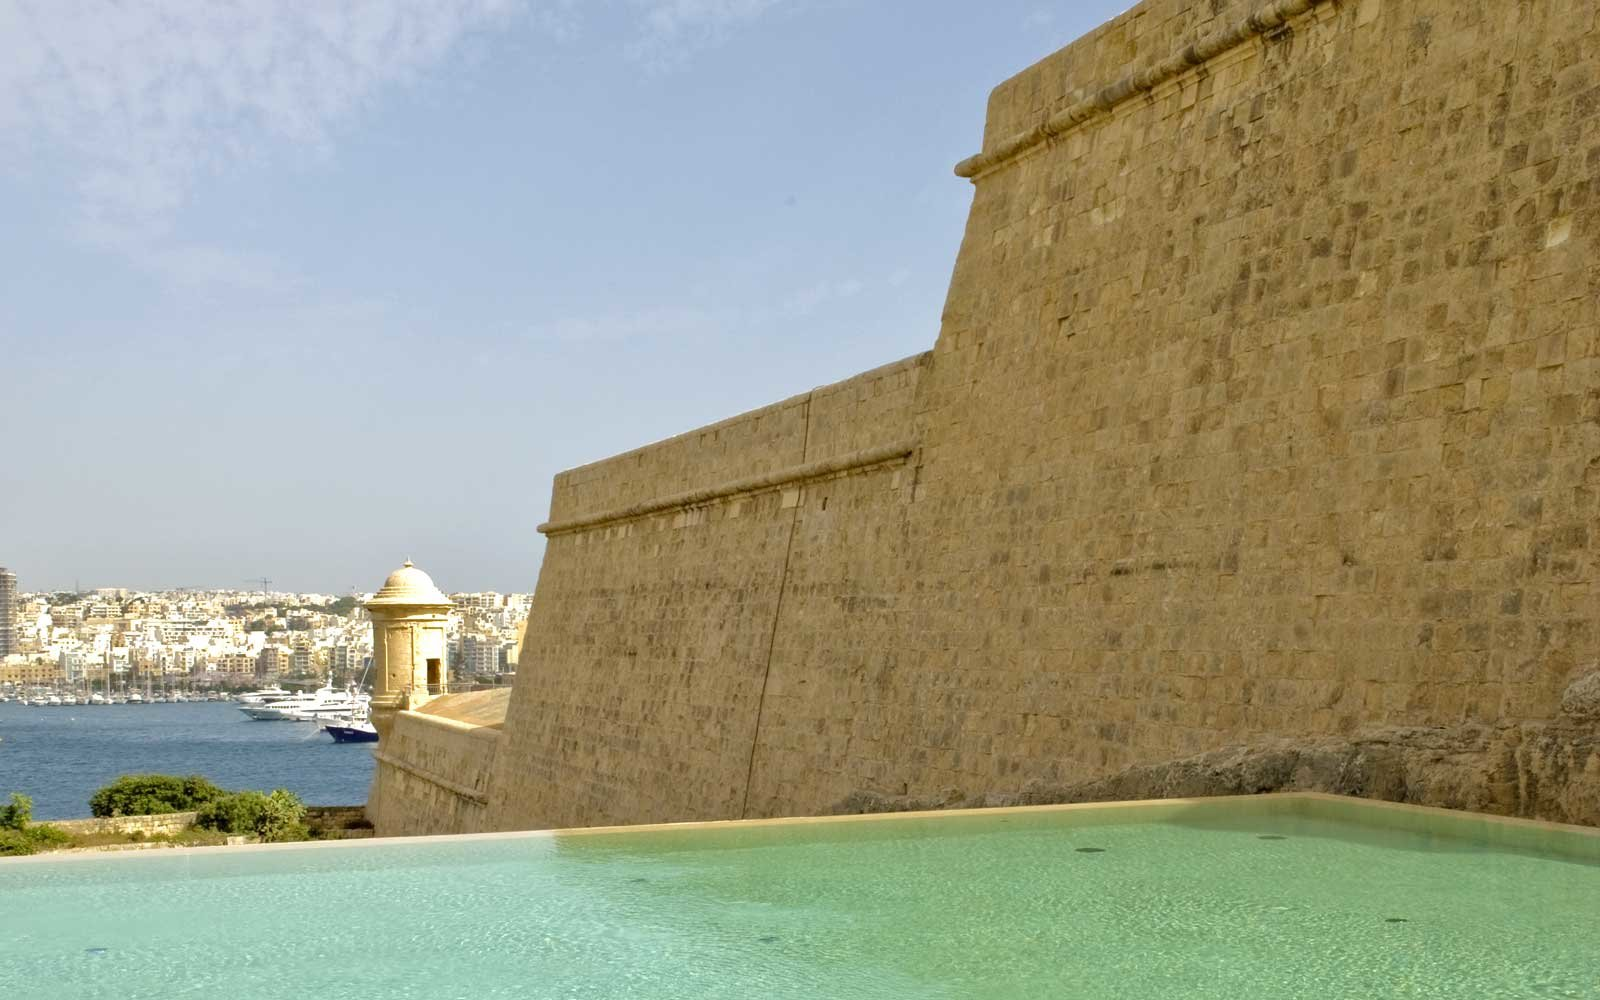 The pool at the Phoenicia Hotel, in Malta